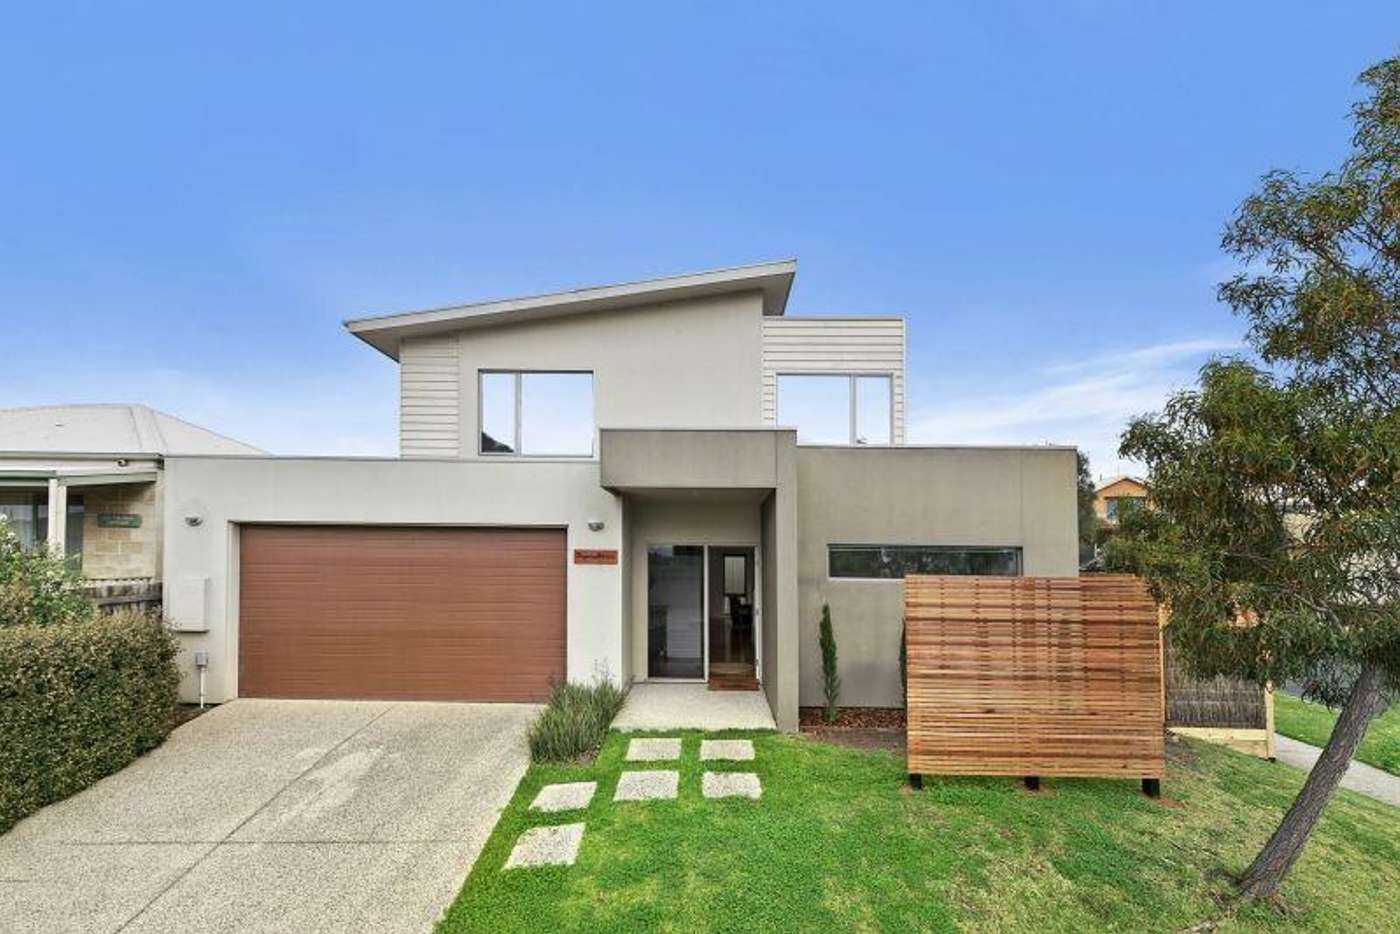 Main view of Homely house listing, 145 FISCHER Street, Torquay VIC 3228